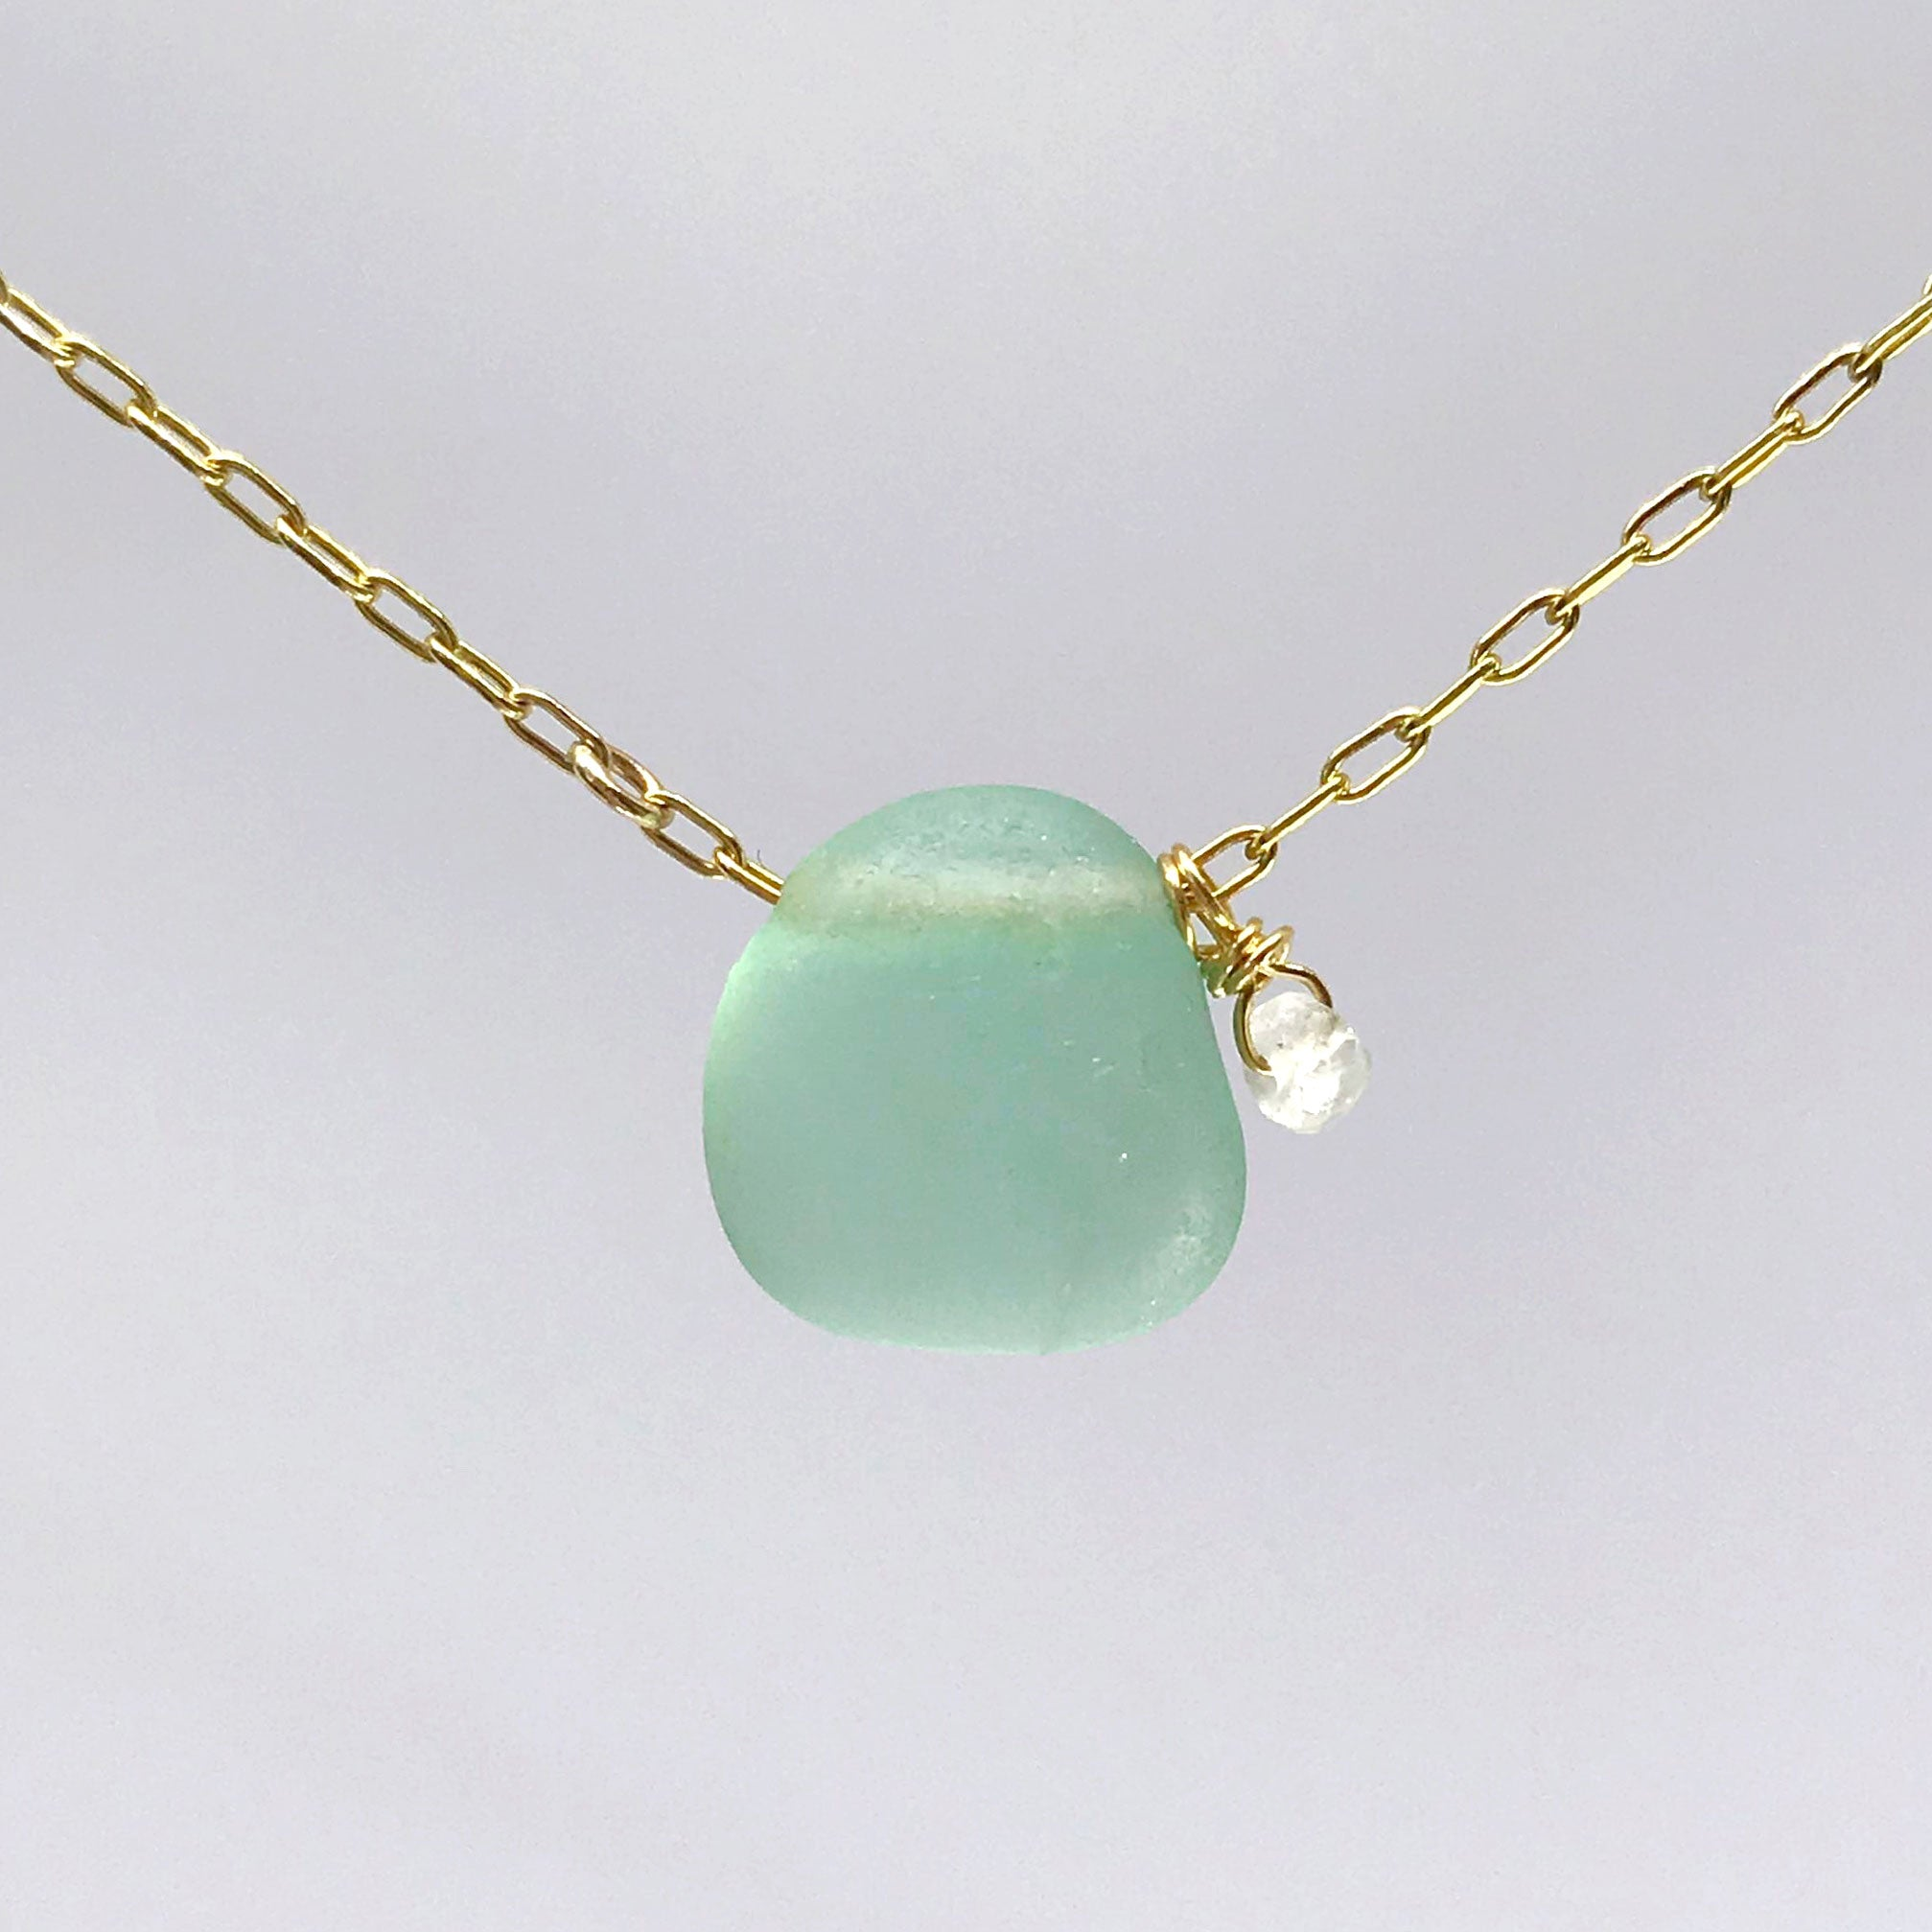 Aqua Seaglass Necklace on Short Gold chain - kriket-broadhurst artisan jewellery